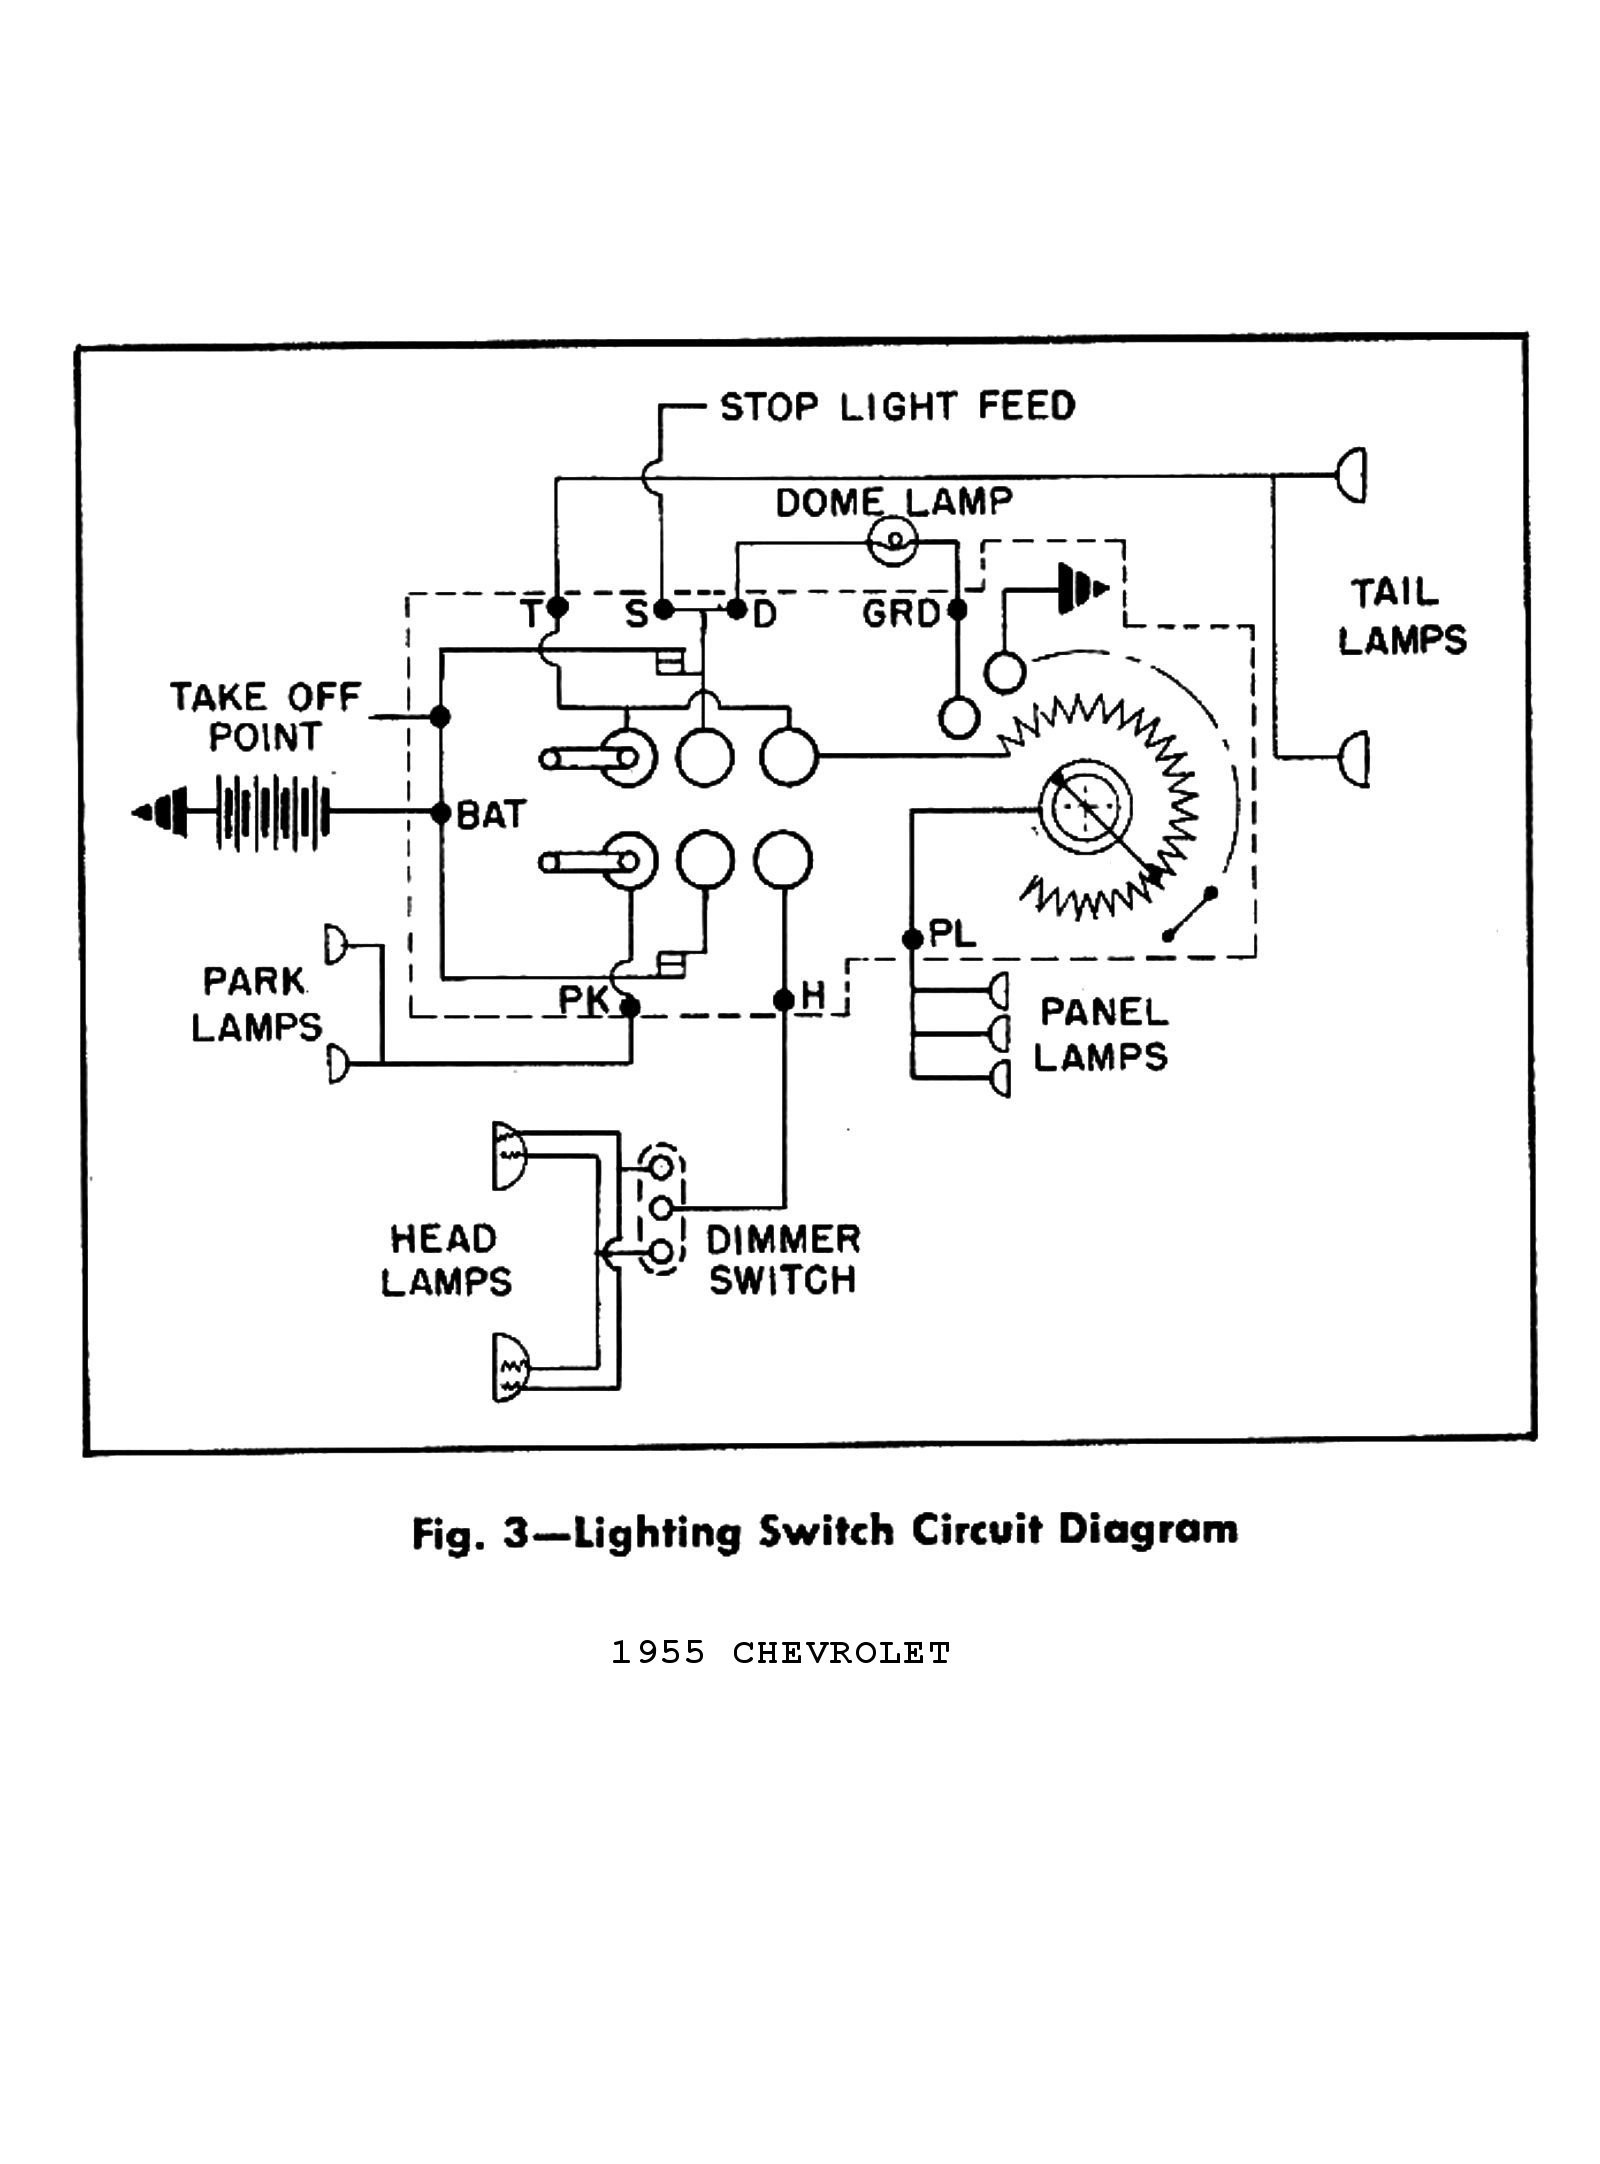 safety switch wiring diagram Collection-Wiring Diagram for Neutral Safety Switch Inspirationa Safety Switch Wiring Diagram Inspirational Chevy Wiring Diagrams 10-c